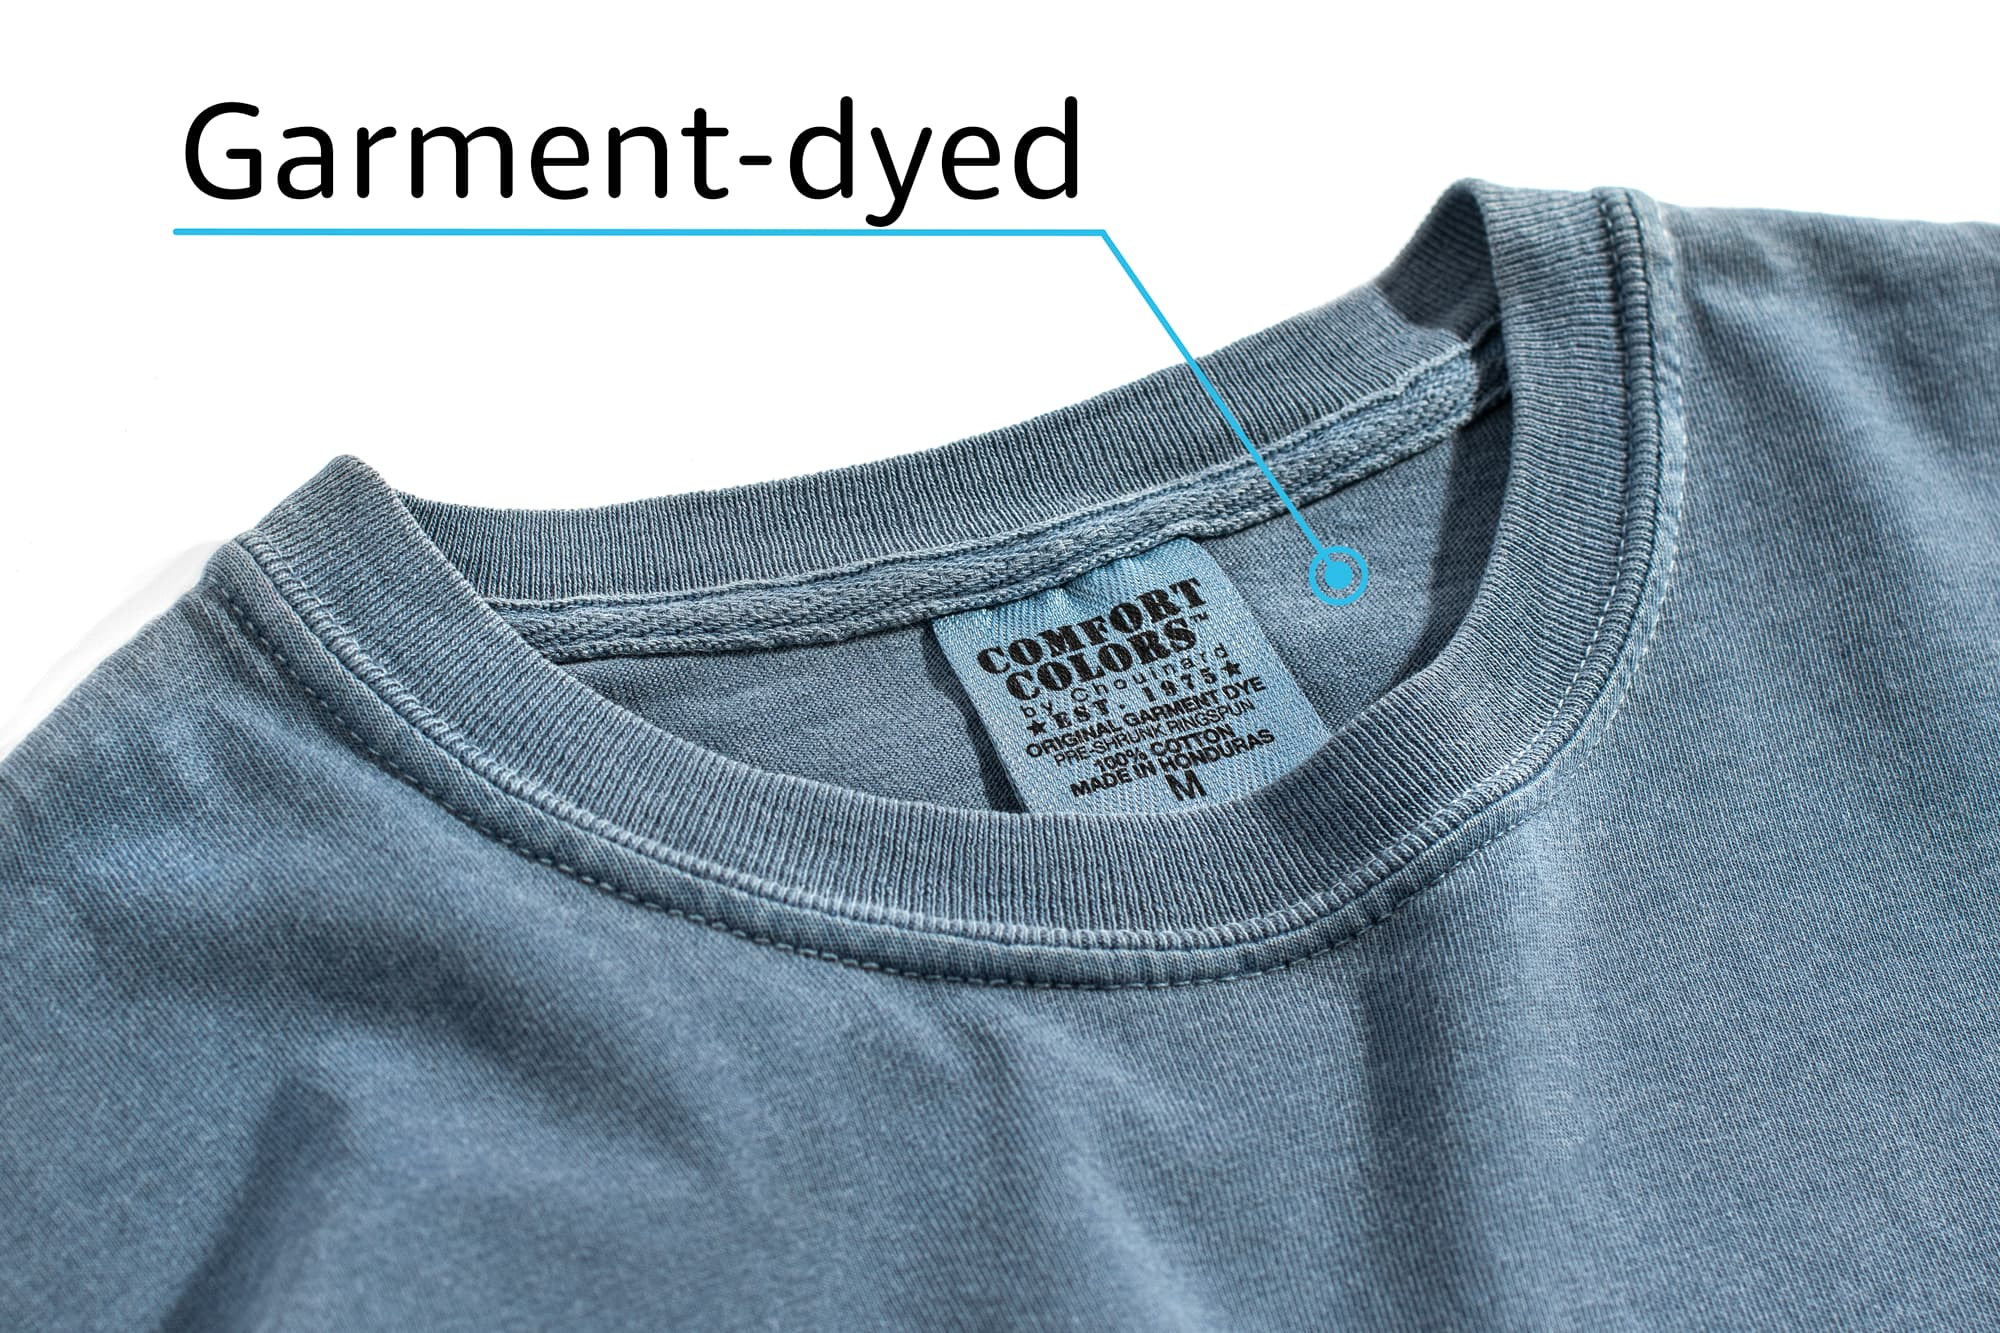 A Comfort Colors Pigment-Dyed T-Shirt demonstrating specialty processes.